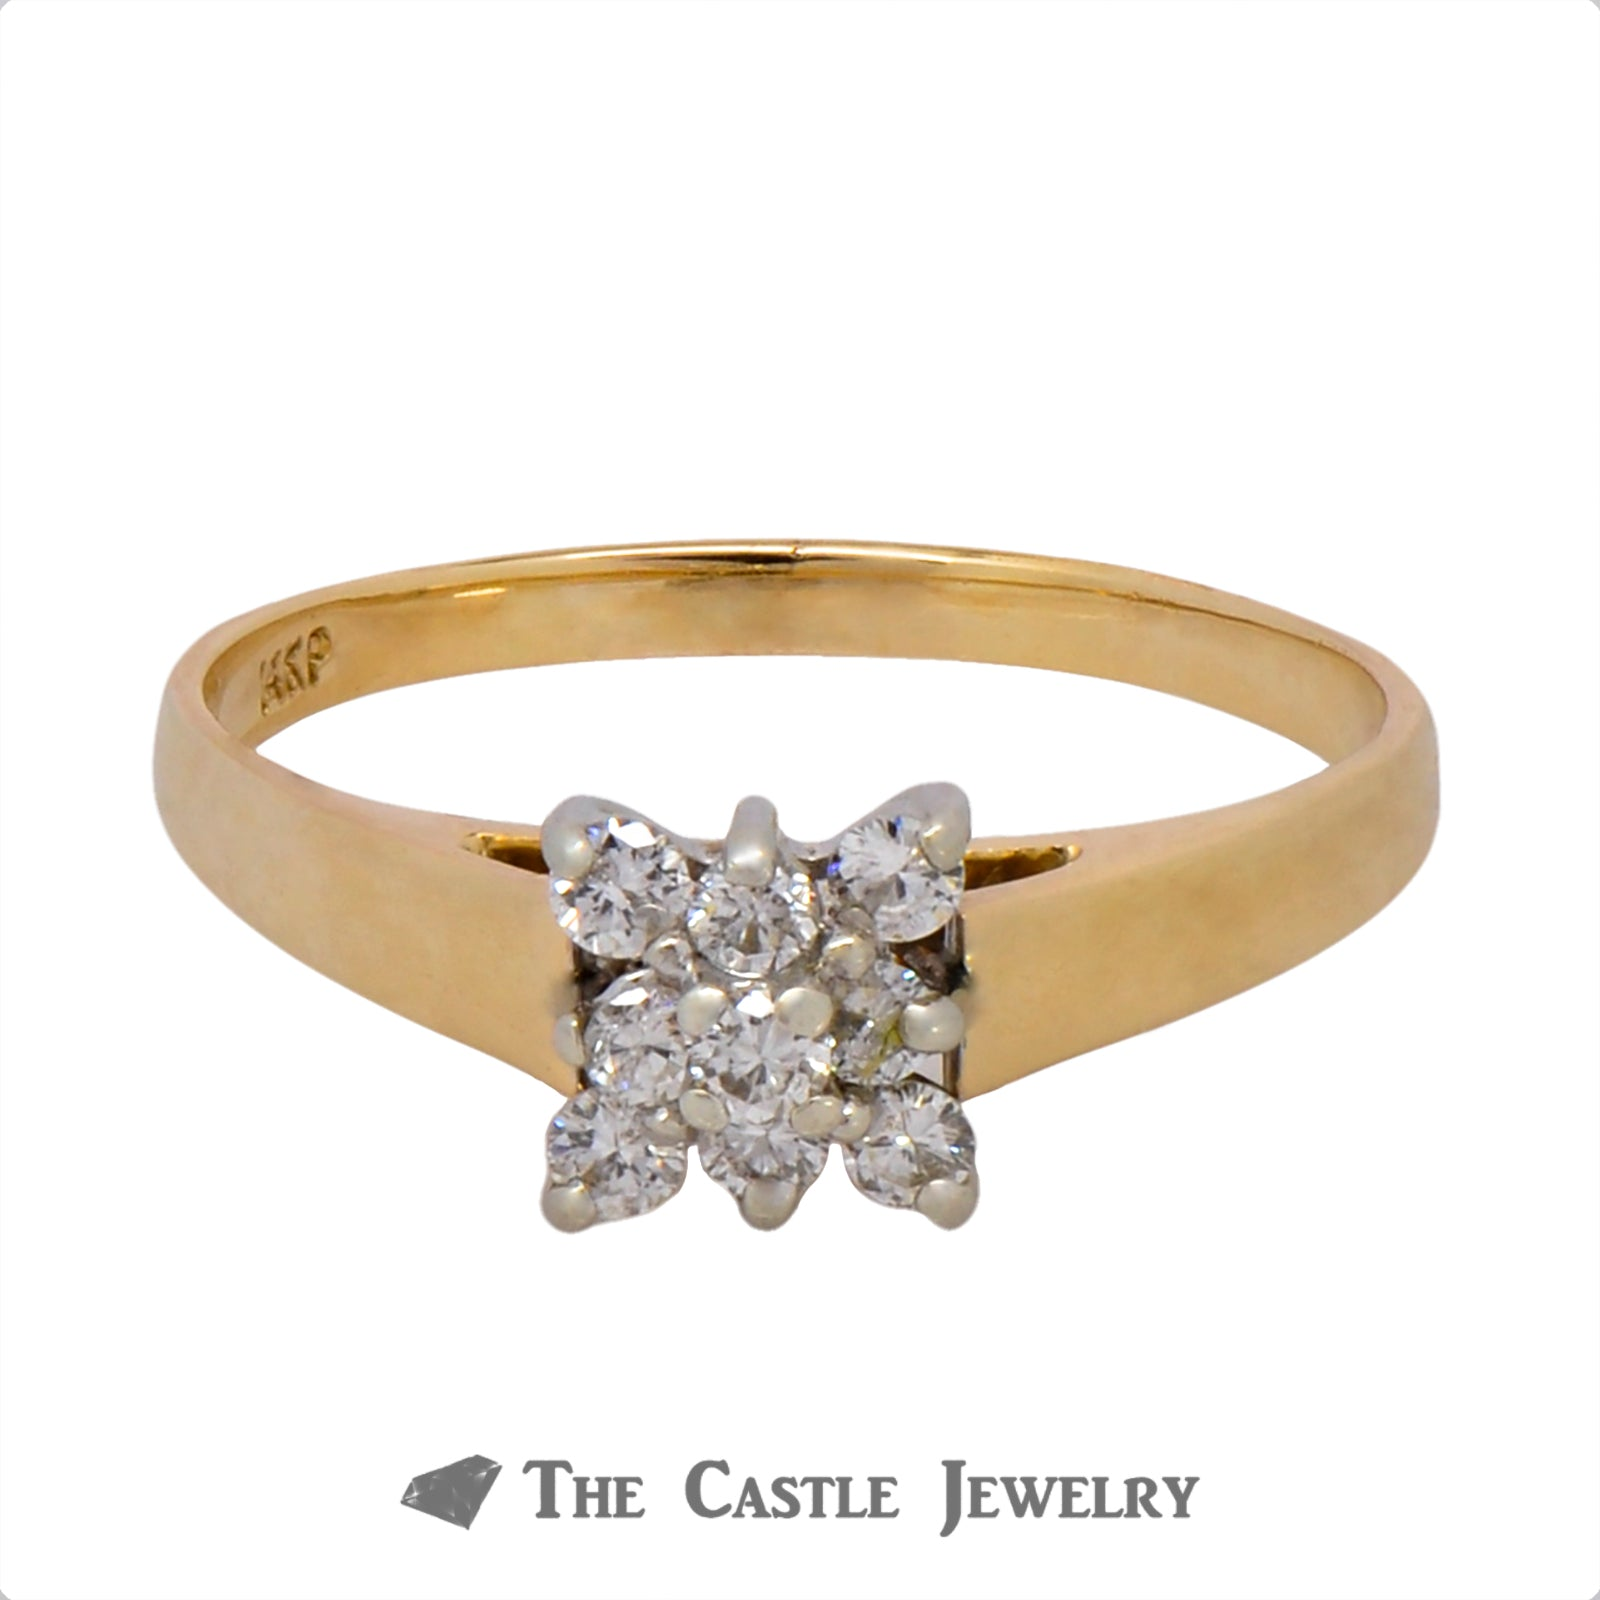 Square Diamond Shaped Cluster Ring in 14k Yellow Gold